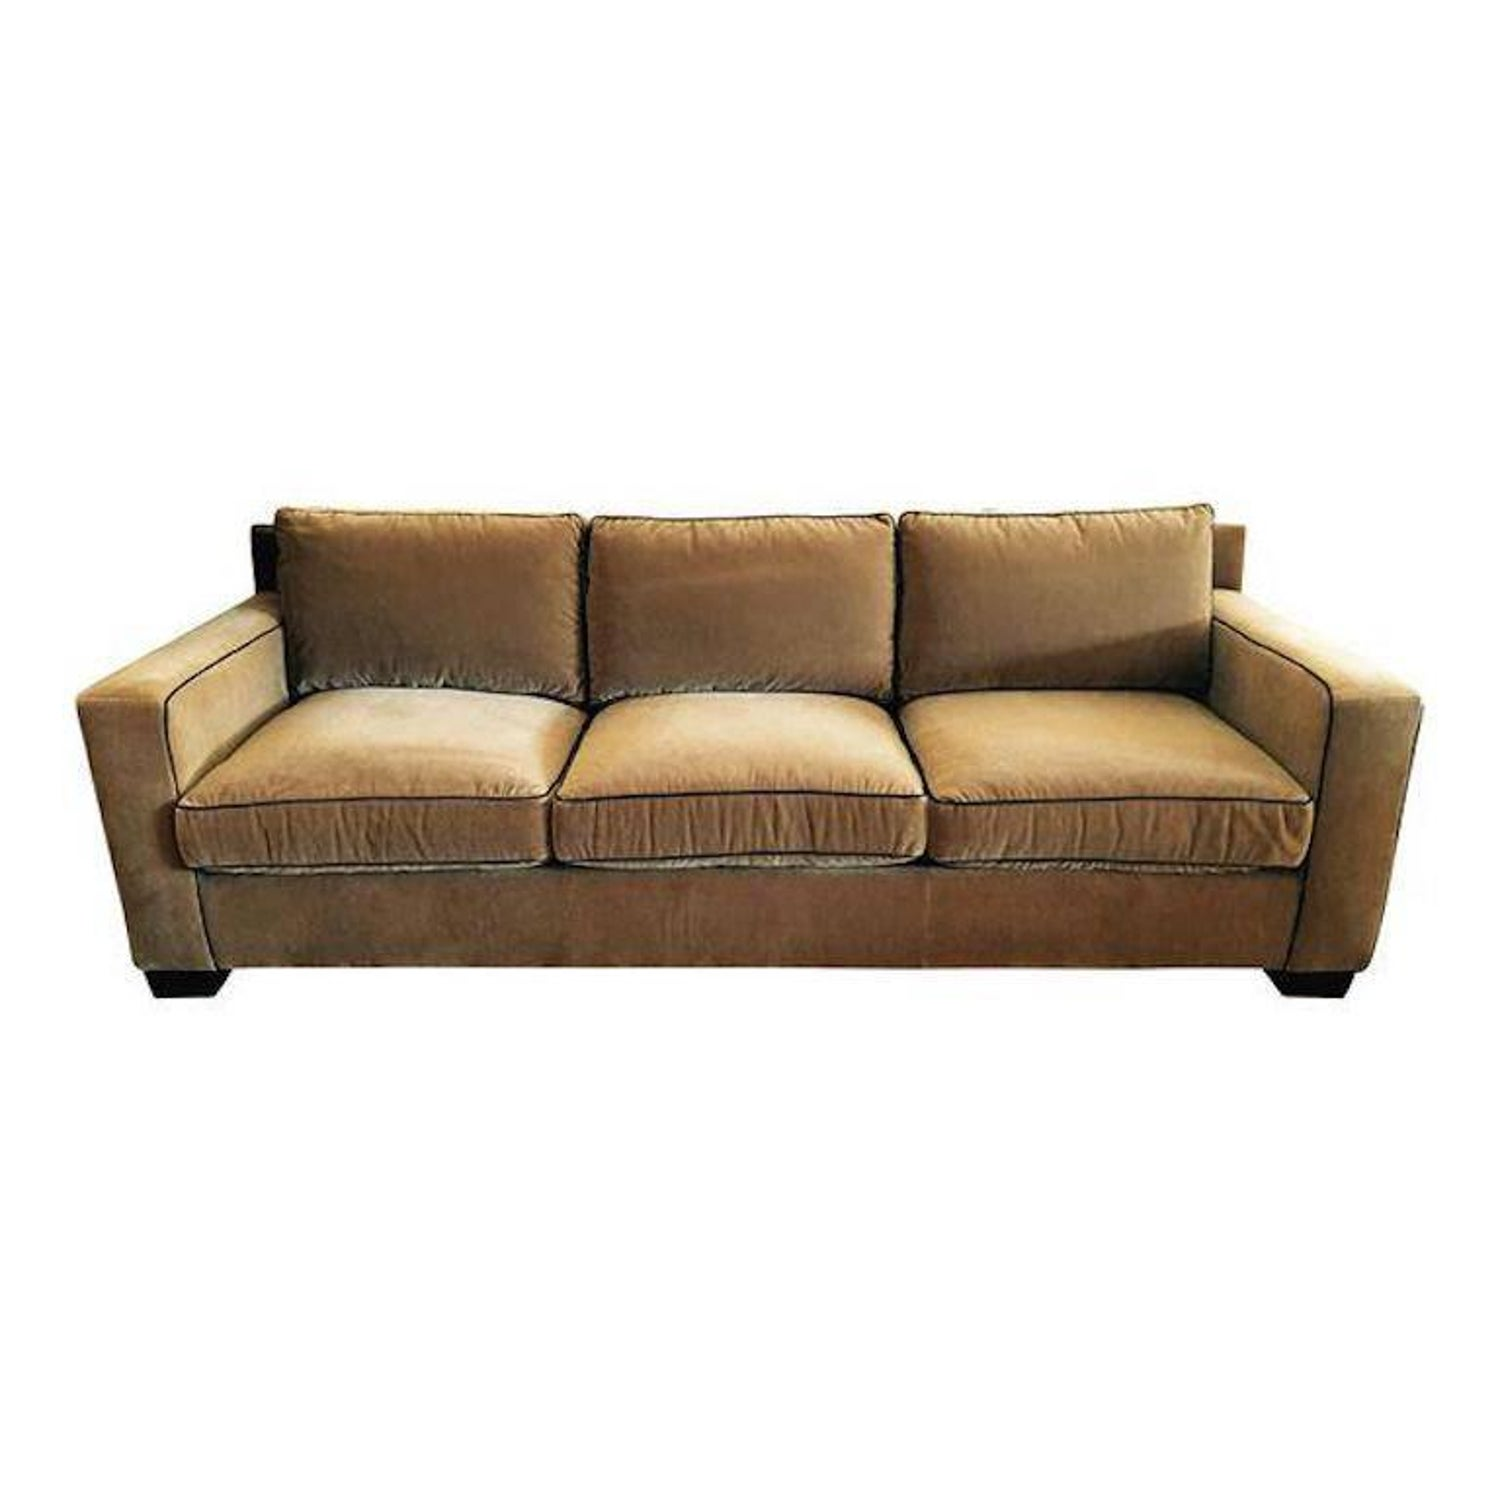 Ralph Lauren Furniture Tables Chairs Sofas & More 80 For Sale